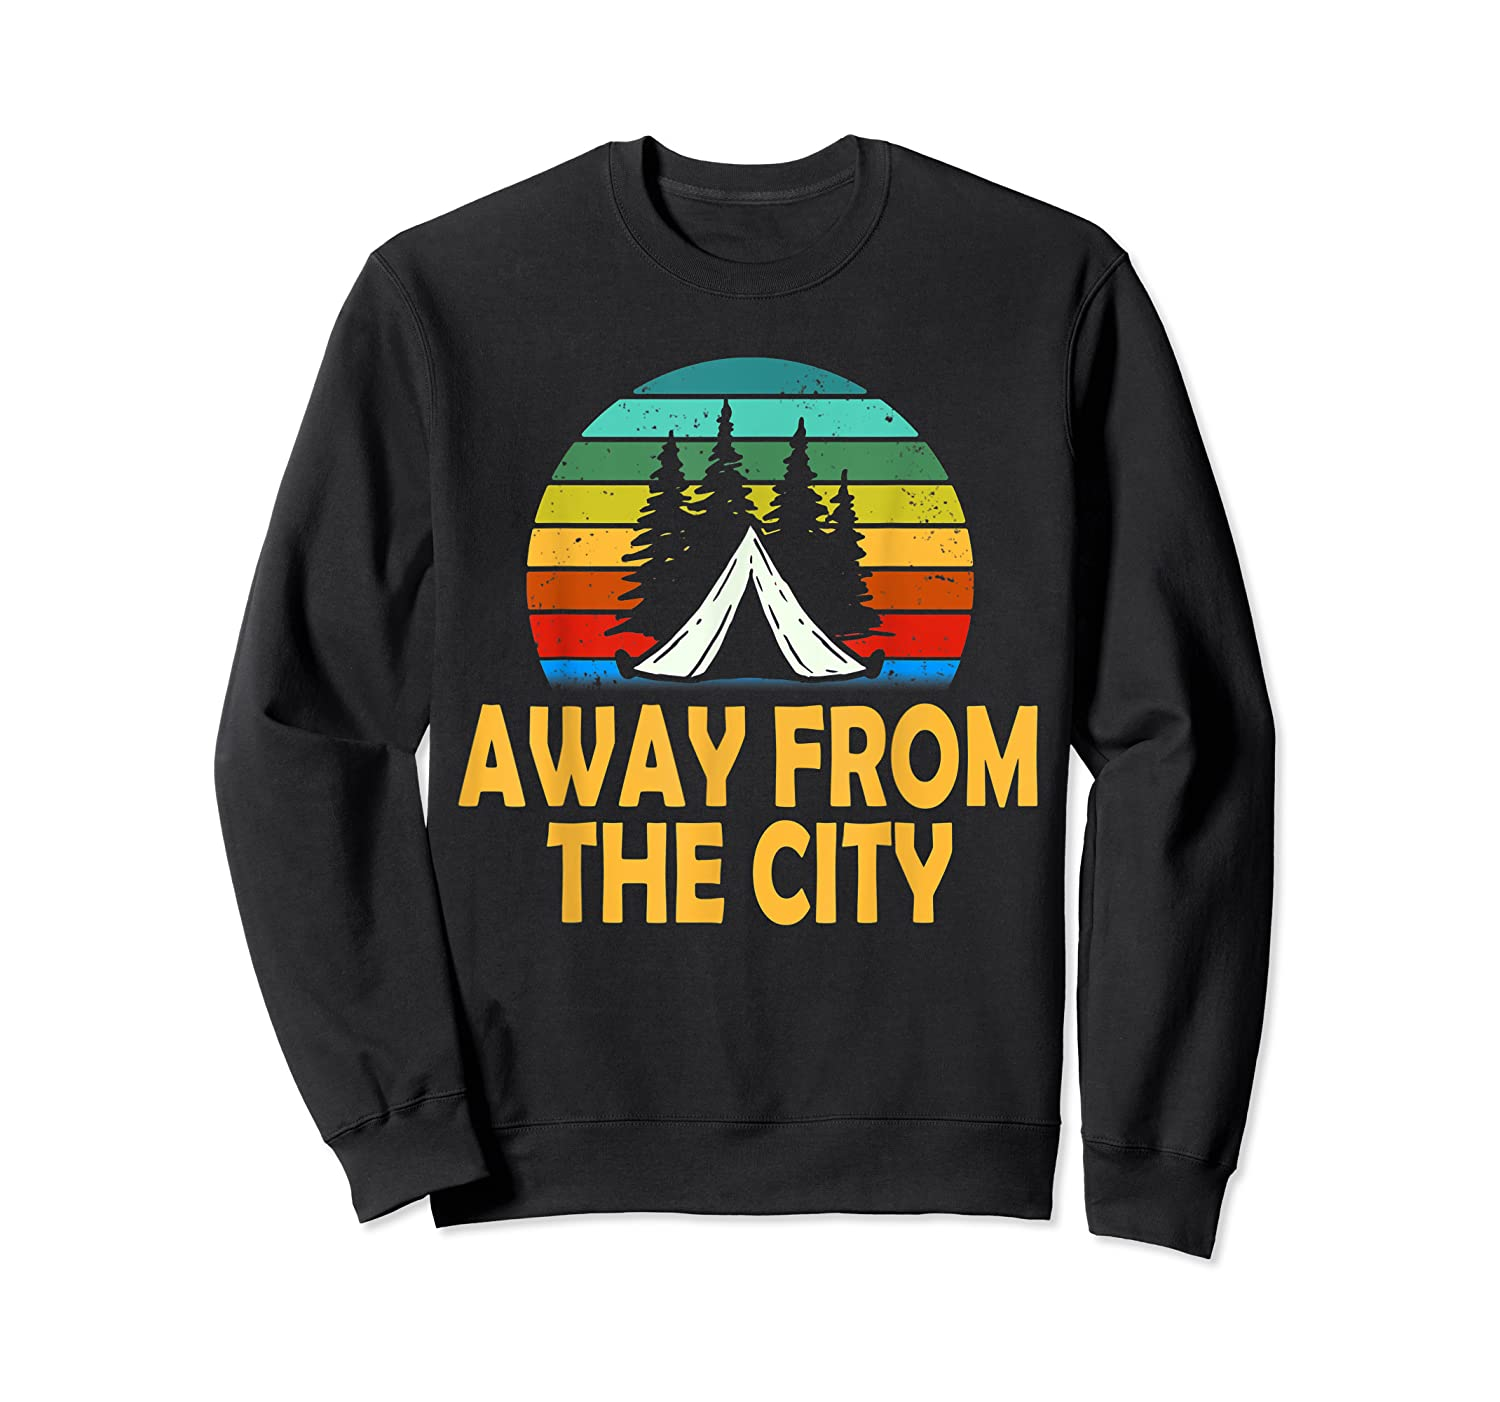 Funny Camping Shirt Away From The City Summer Gift Crewneck Sweater